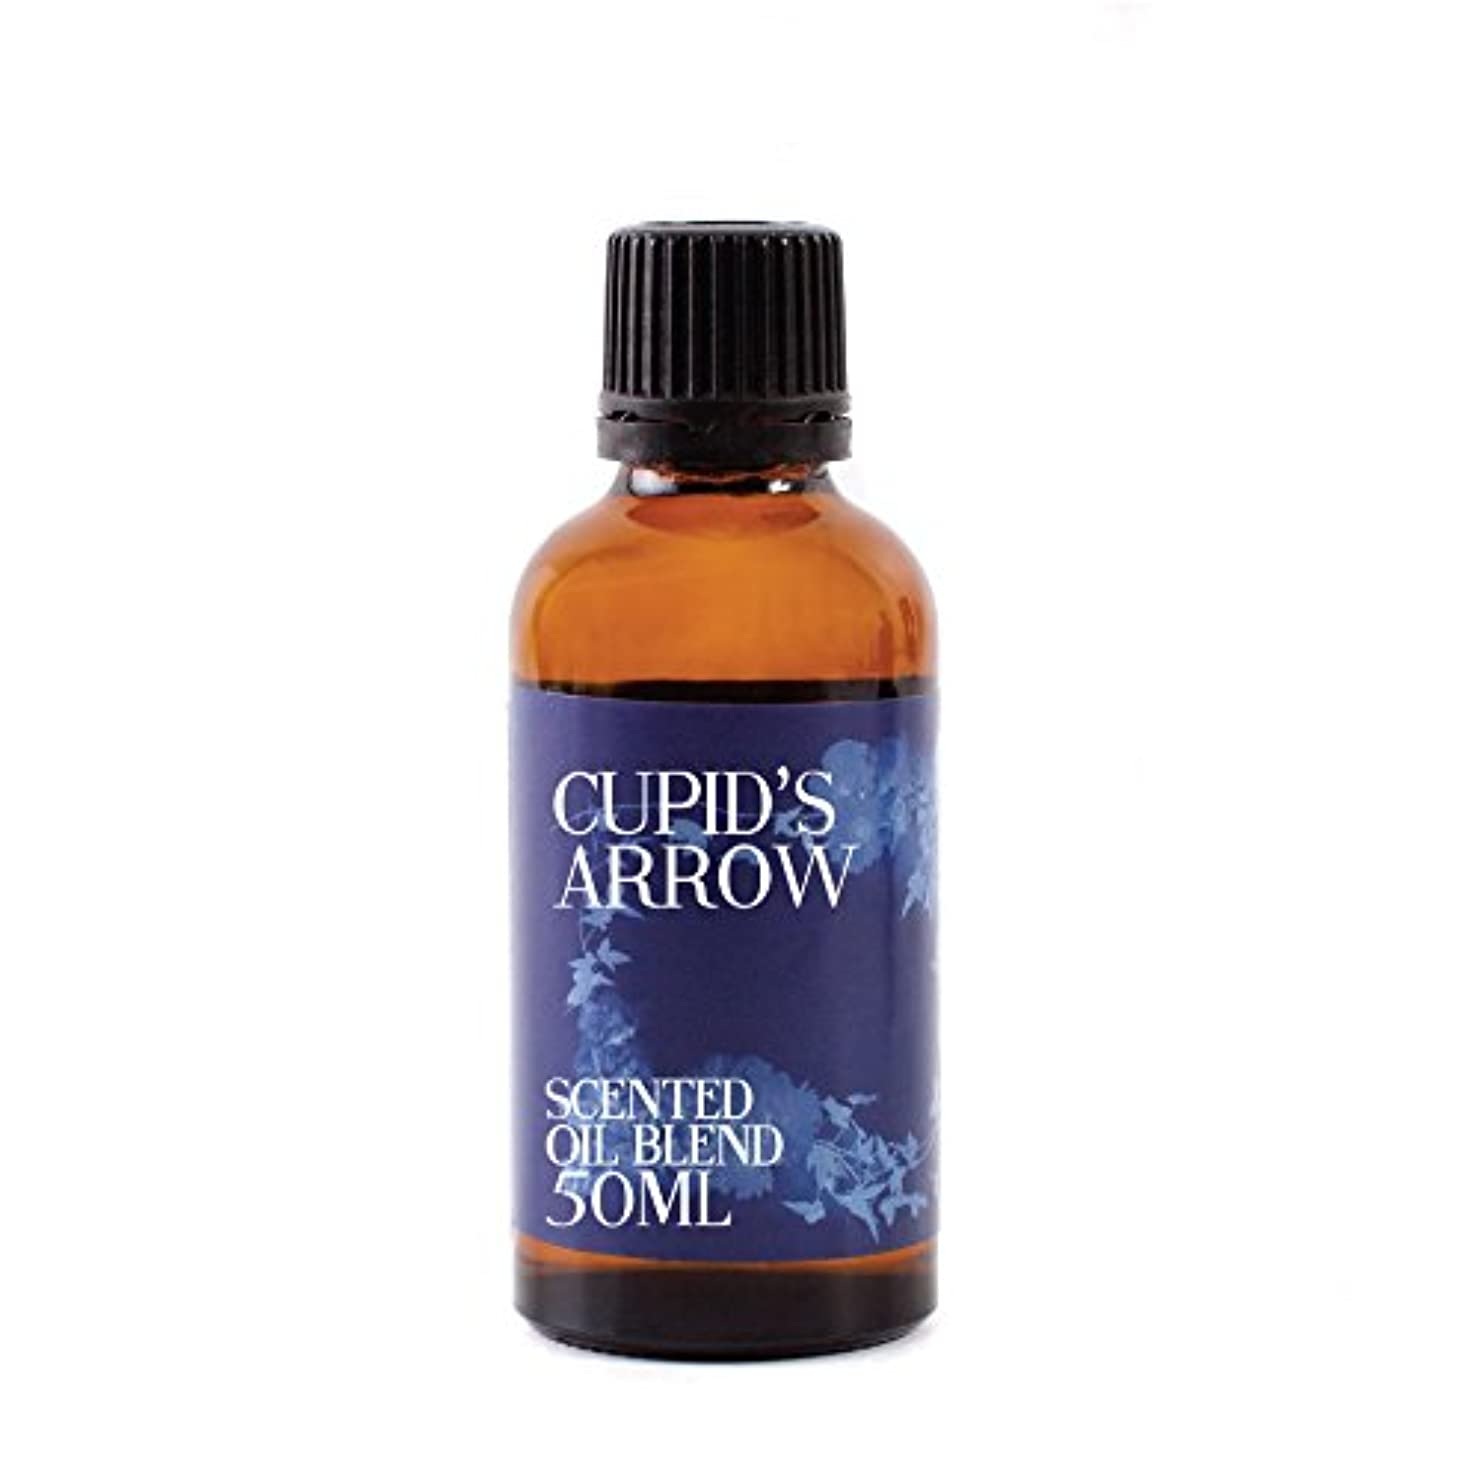 要塞変形パイプラインMystic Moments | Cupid's Arrow - Scented Oil Blend - 50ml